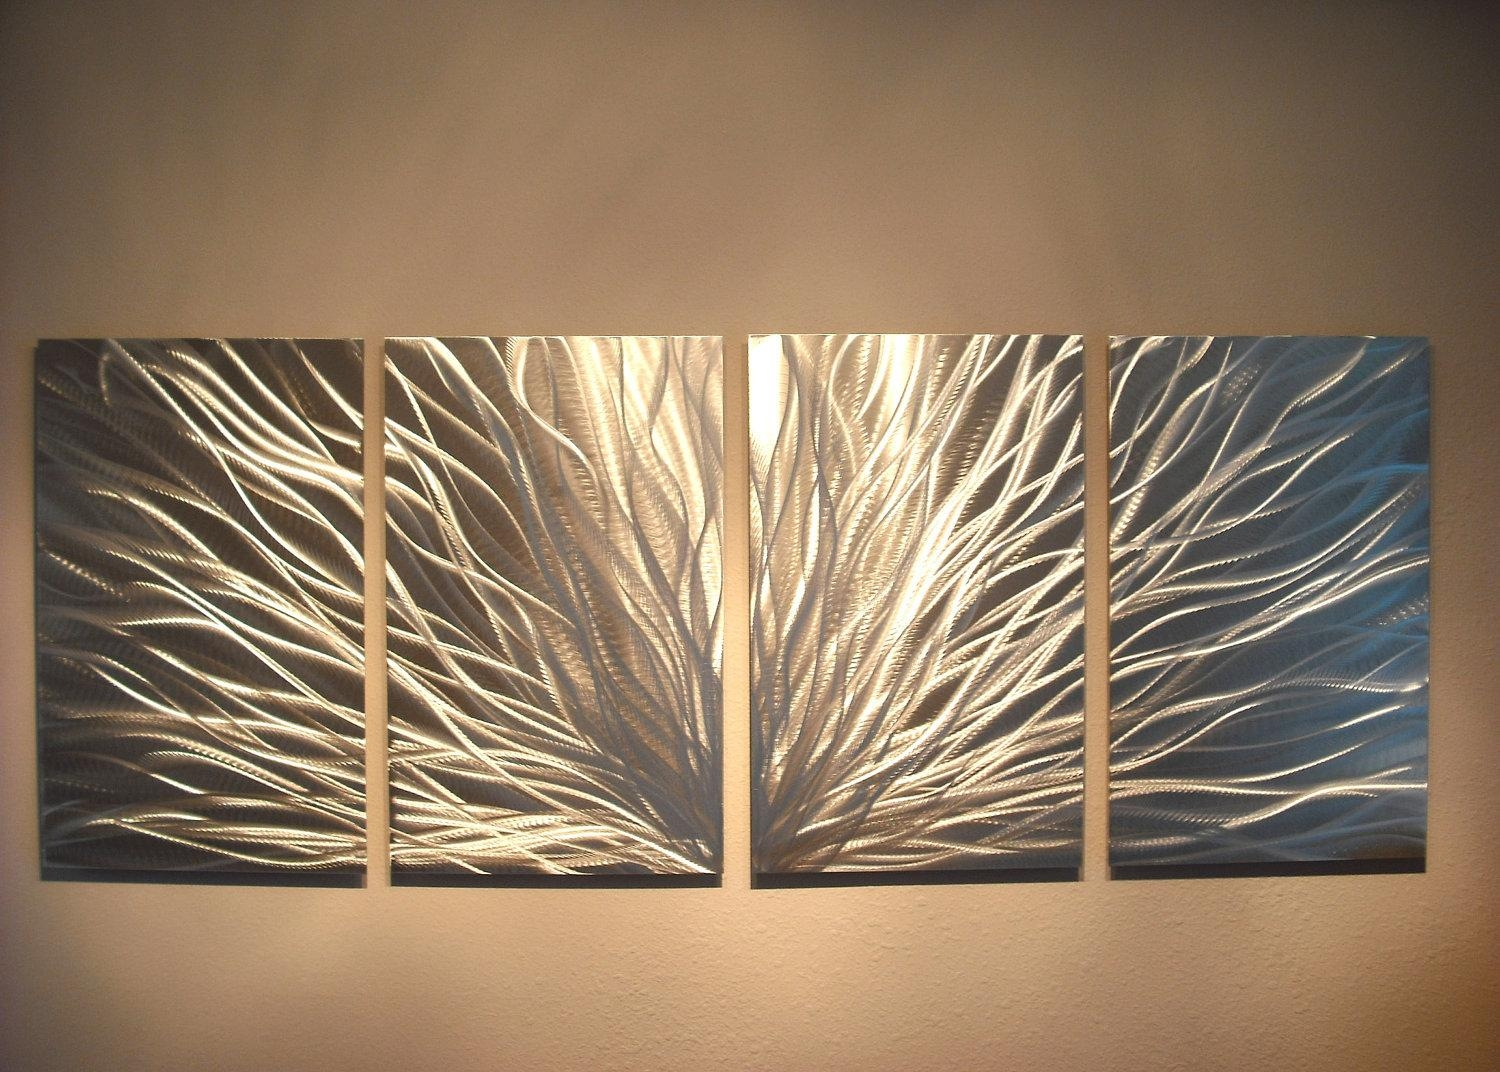 Radiance – Abstract Metal Wall Art Contemporary Modern Decor Throughout Diy Metal Wall Art (View 2 of 20)